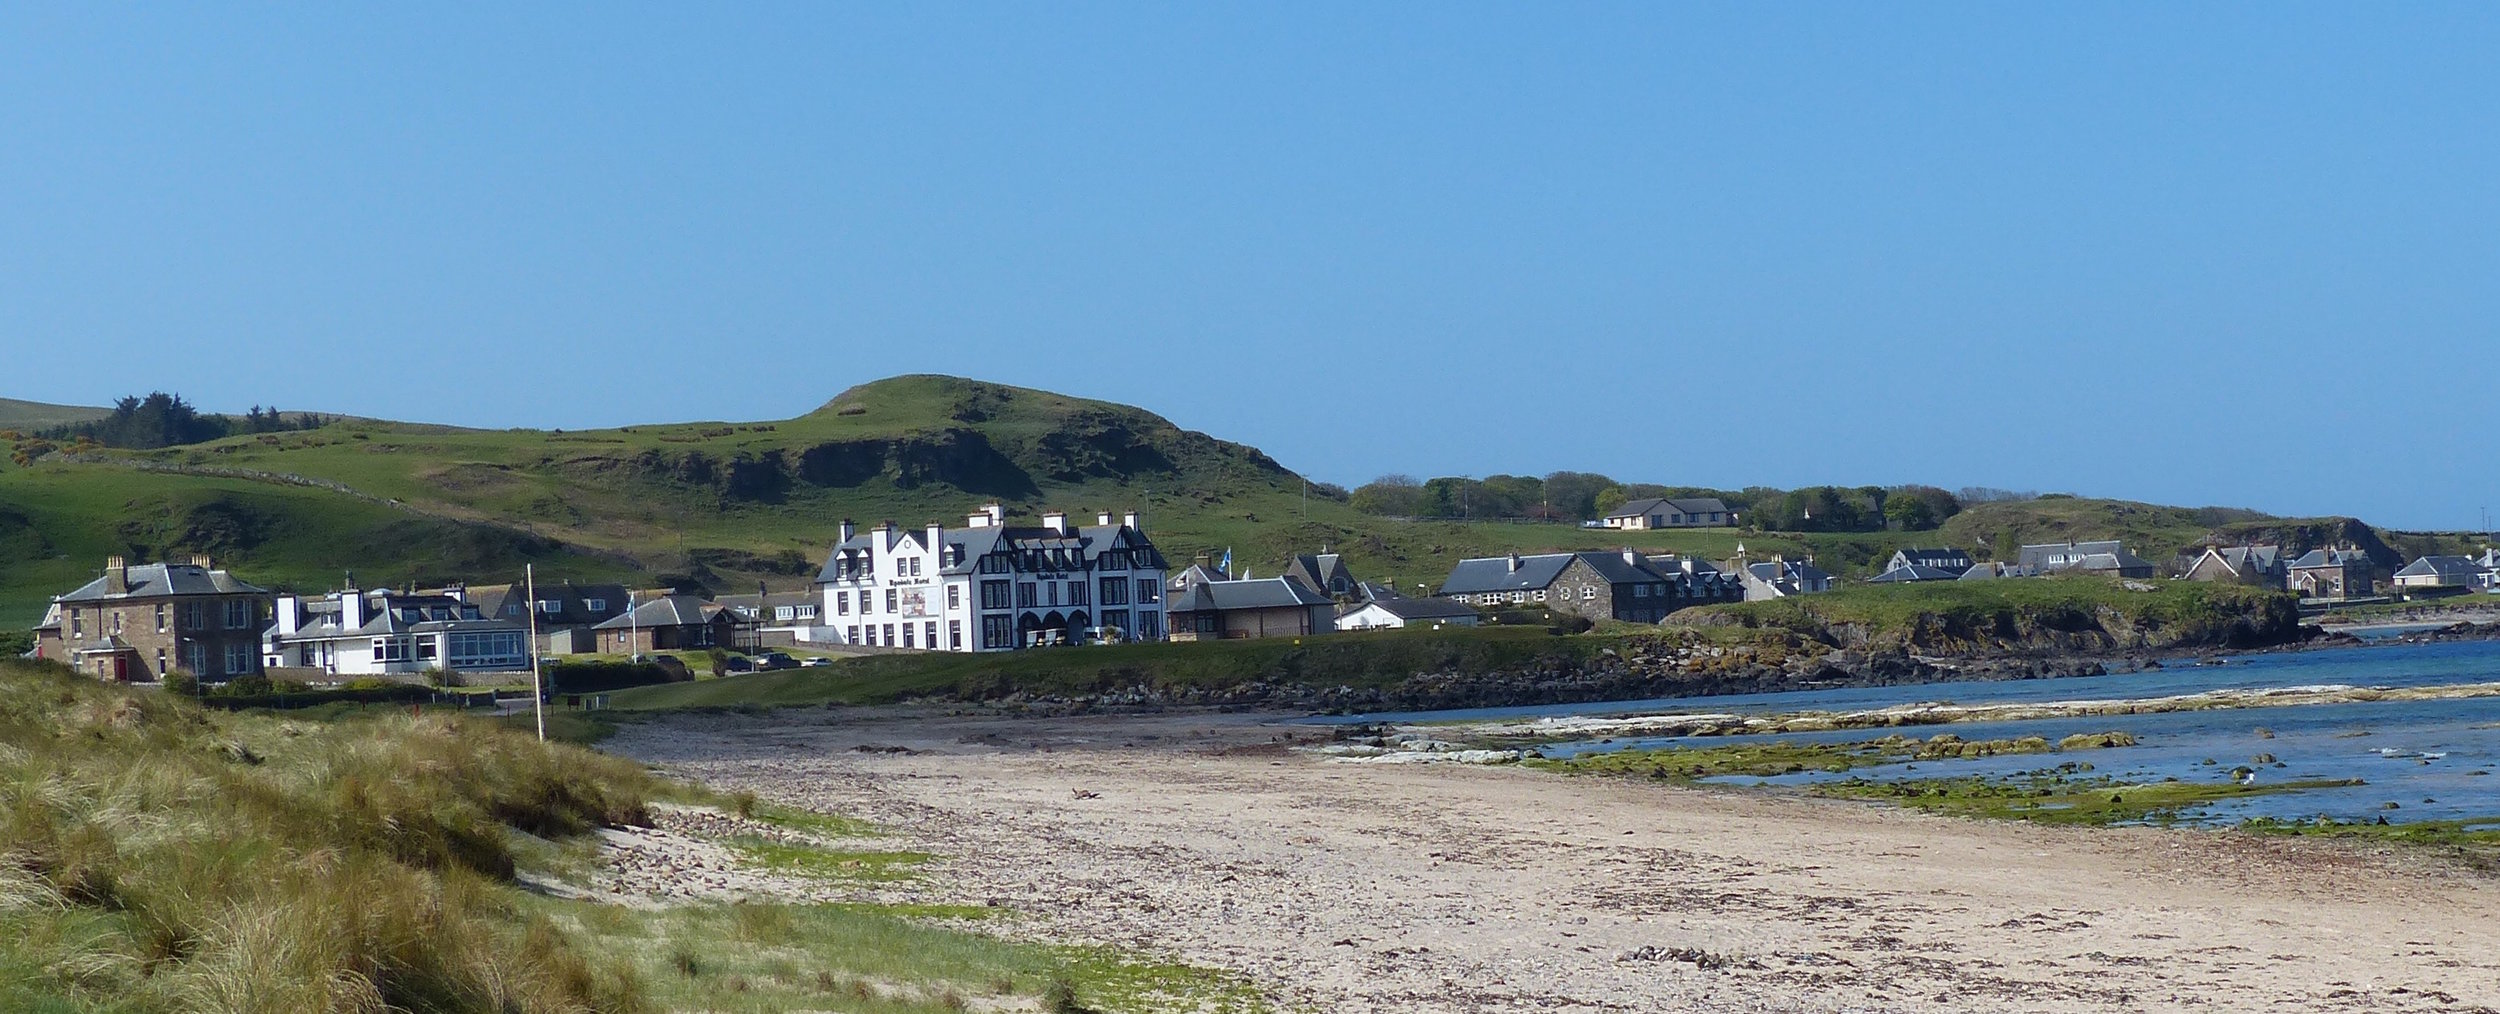 Fresh Perspective --  Here's a view looking back toward the first tee at Machrihanish. The prominent building near the center of the frame is the thoroughly restored version of the Ugadale Hotel whose origins date back to Victorian times.